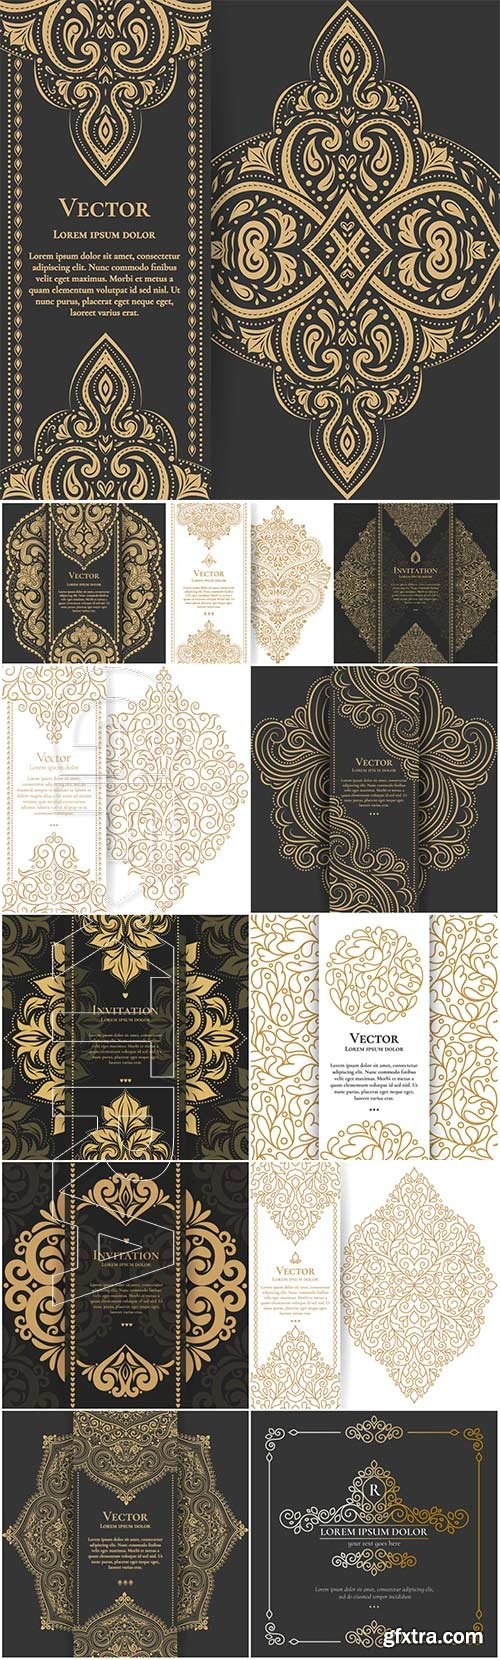 Vector vintage backgrounds with gold patterns